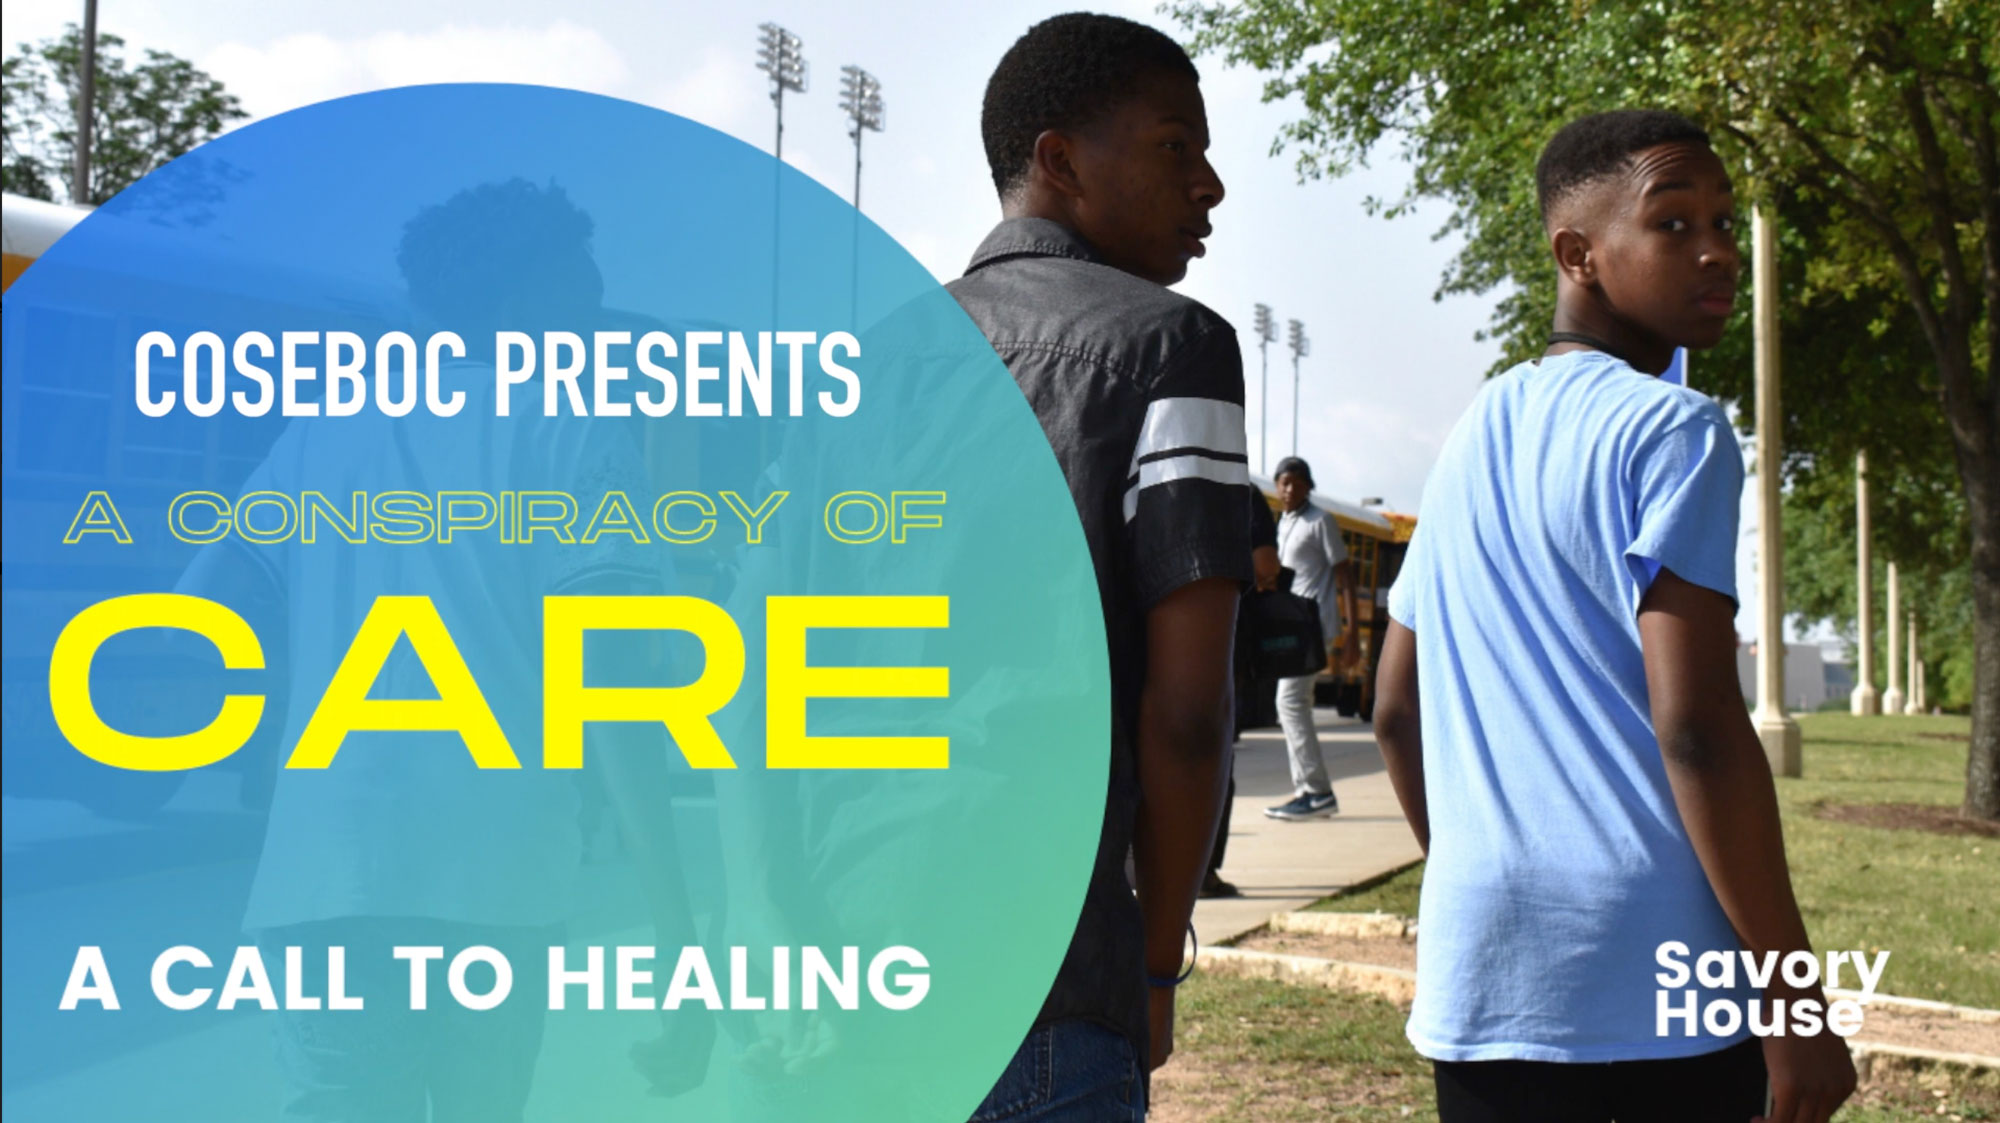 A Conspiracy of Care: A Call to Healing